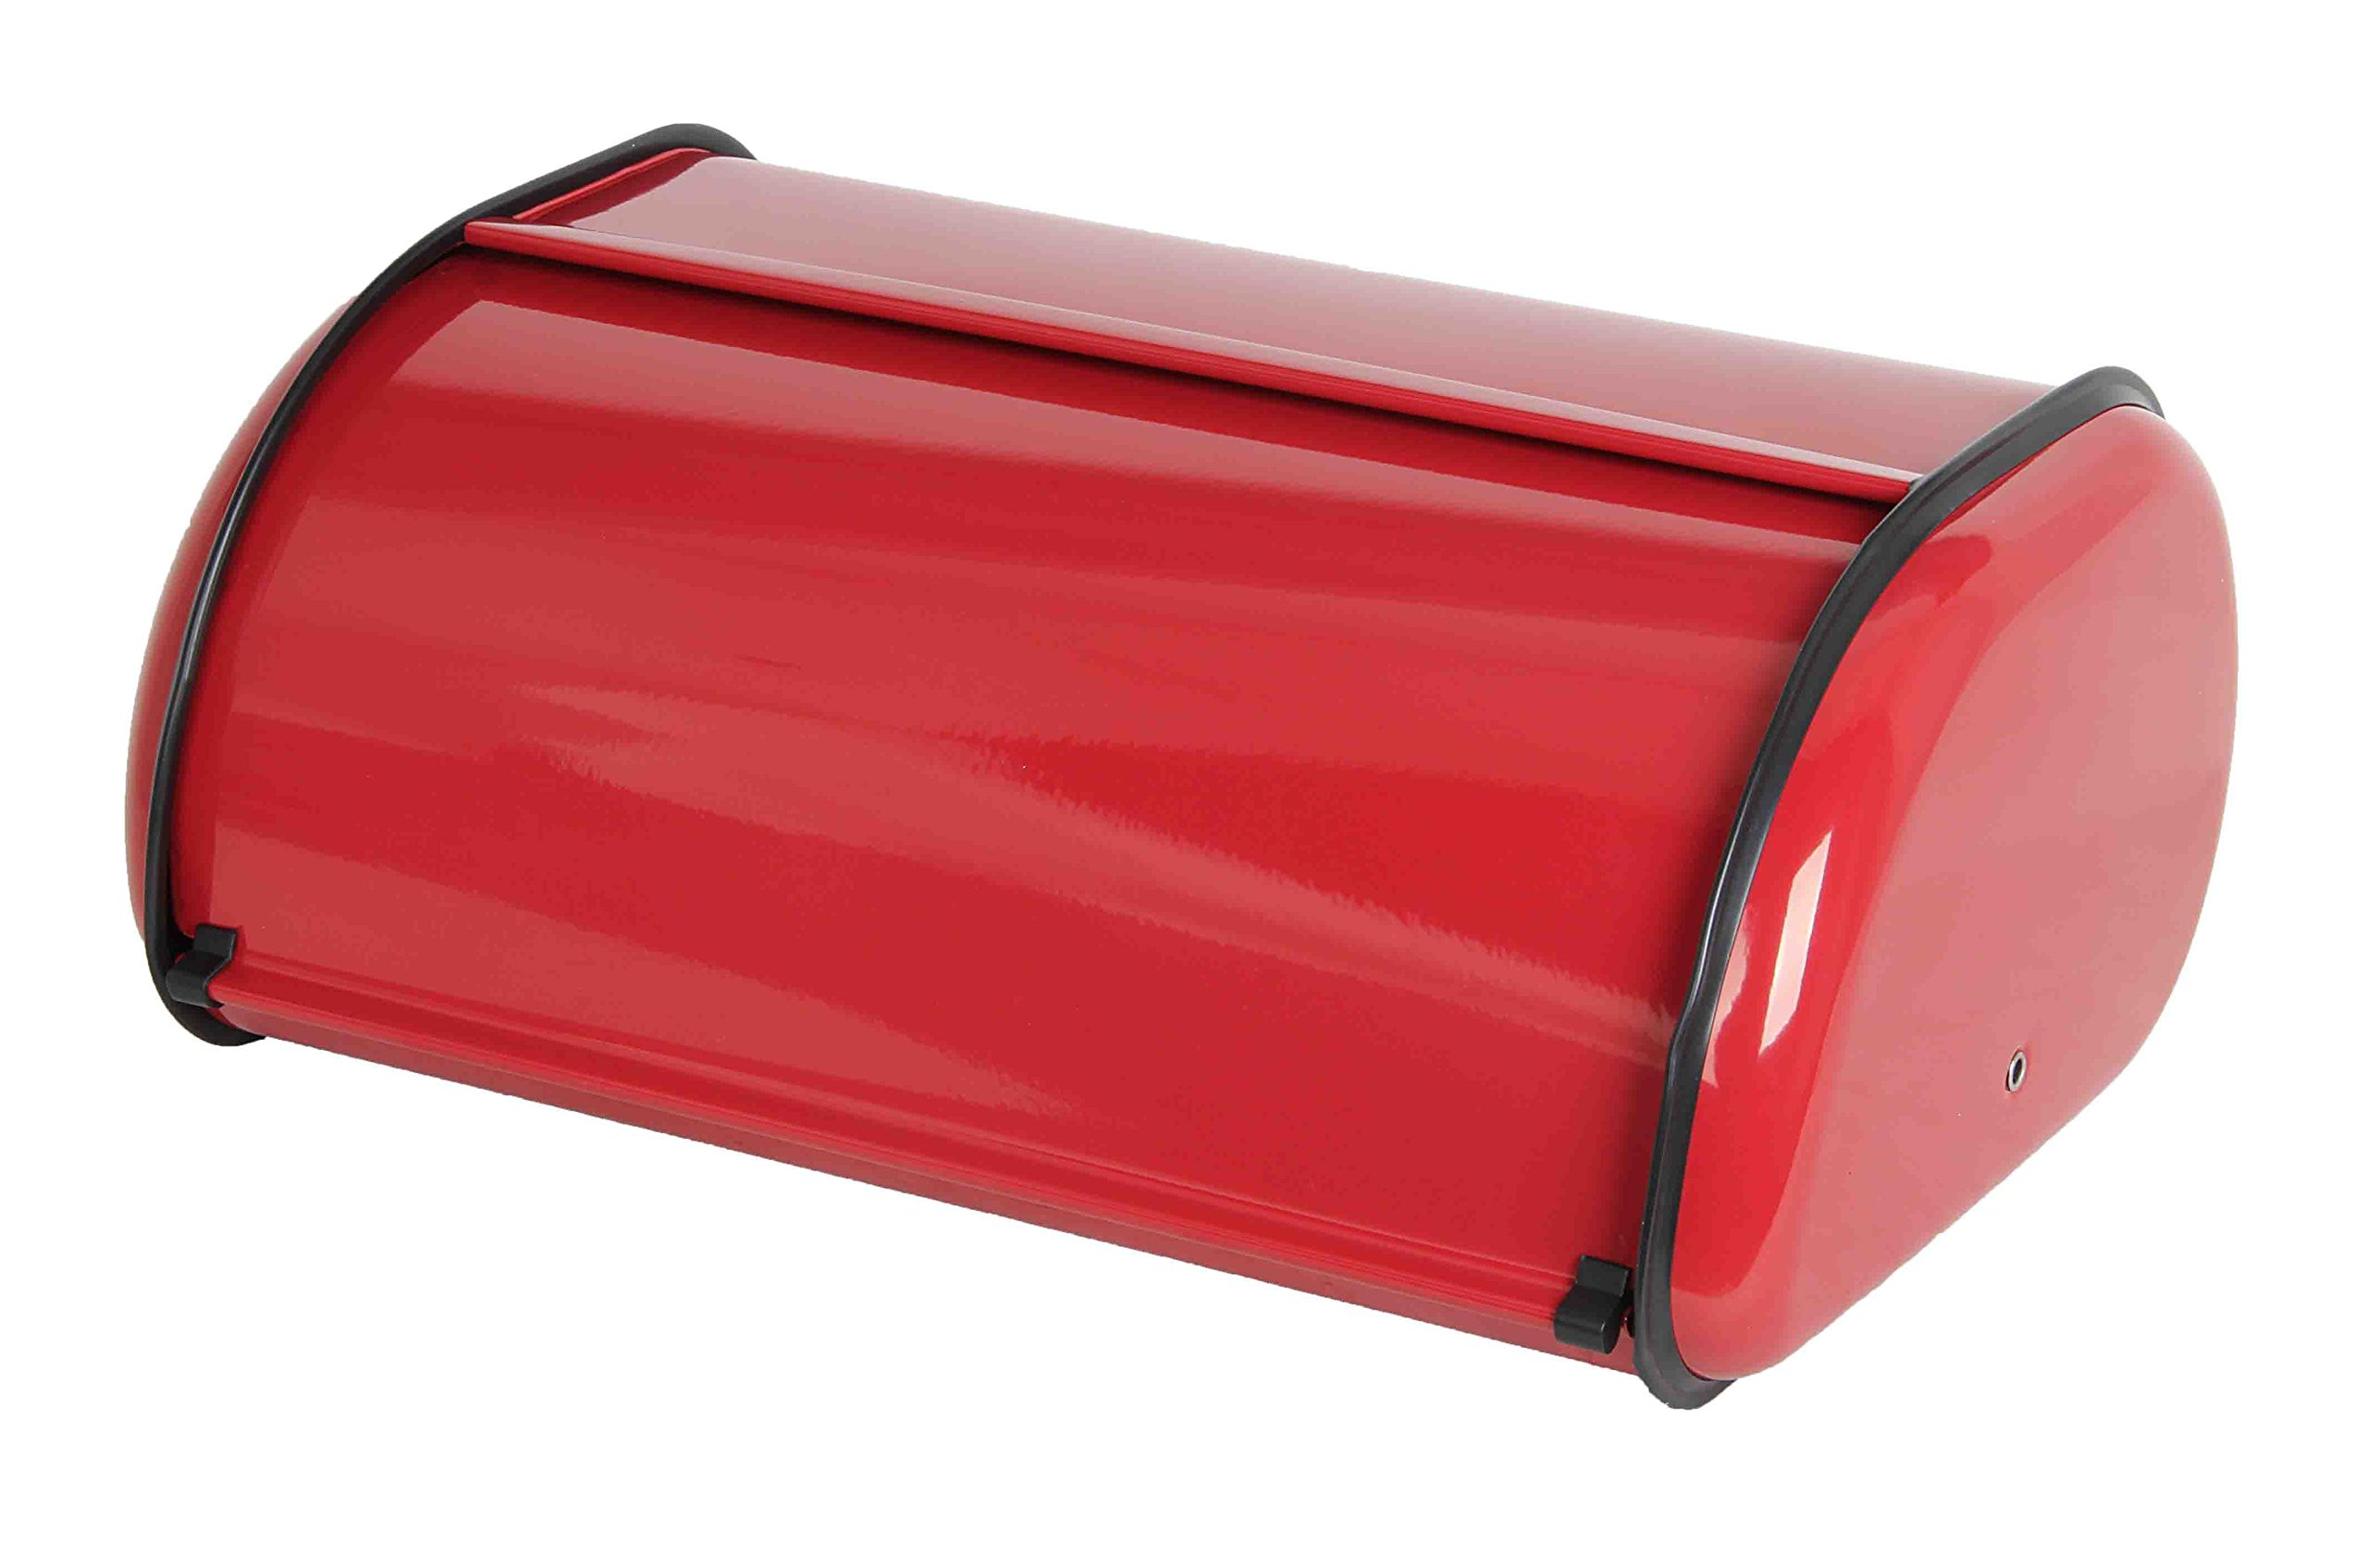 Home Basics Stainless Steel Bread Box with Roll Up Lid, For Easy Kitchen Counter Storage, Bread Bin Holder, Red